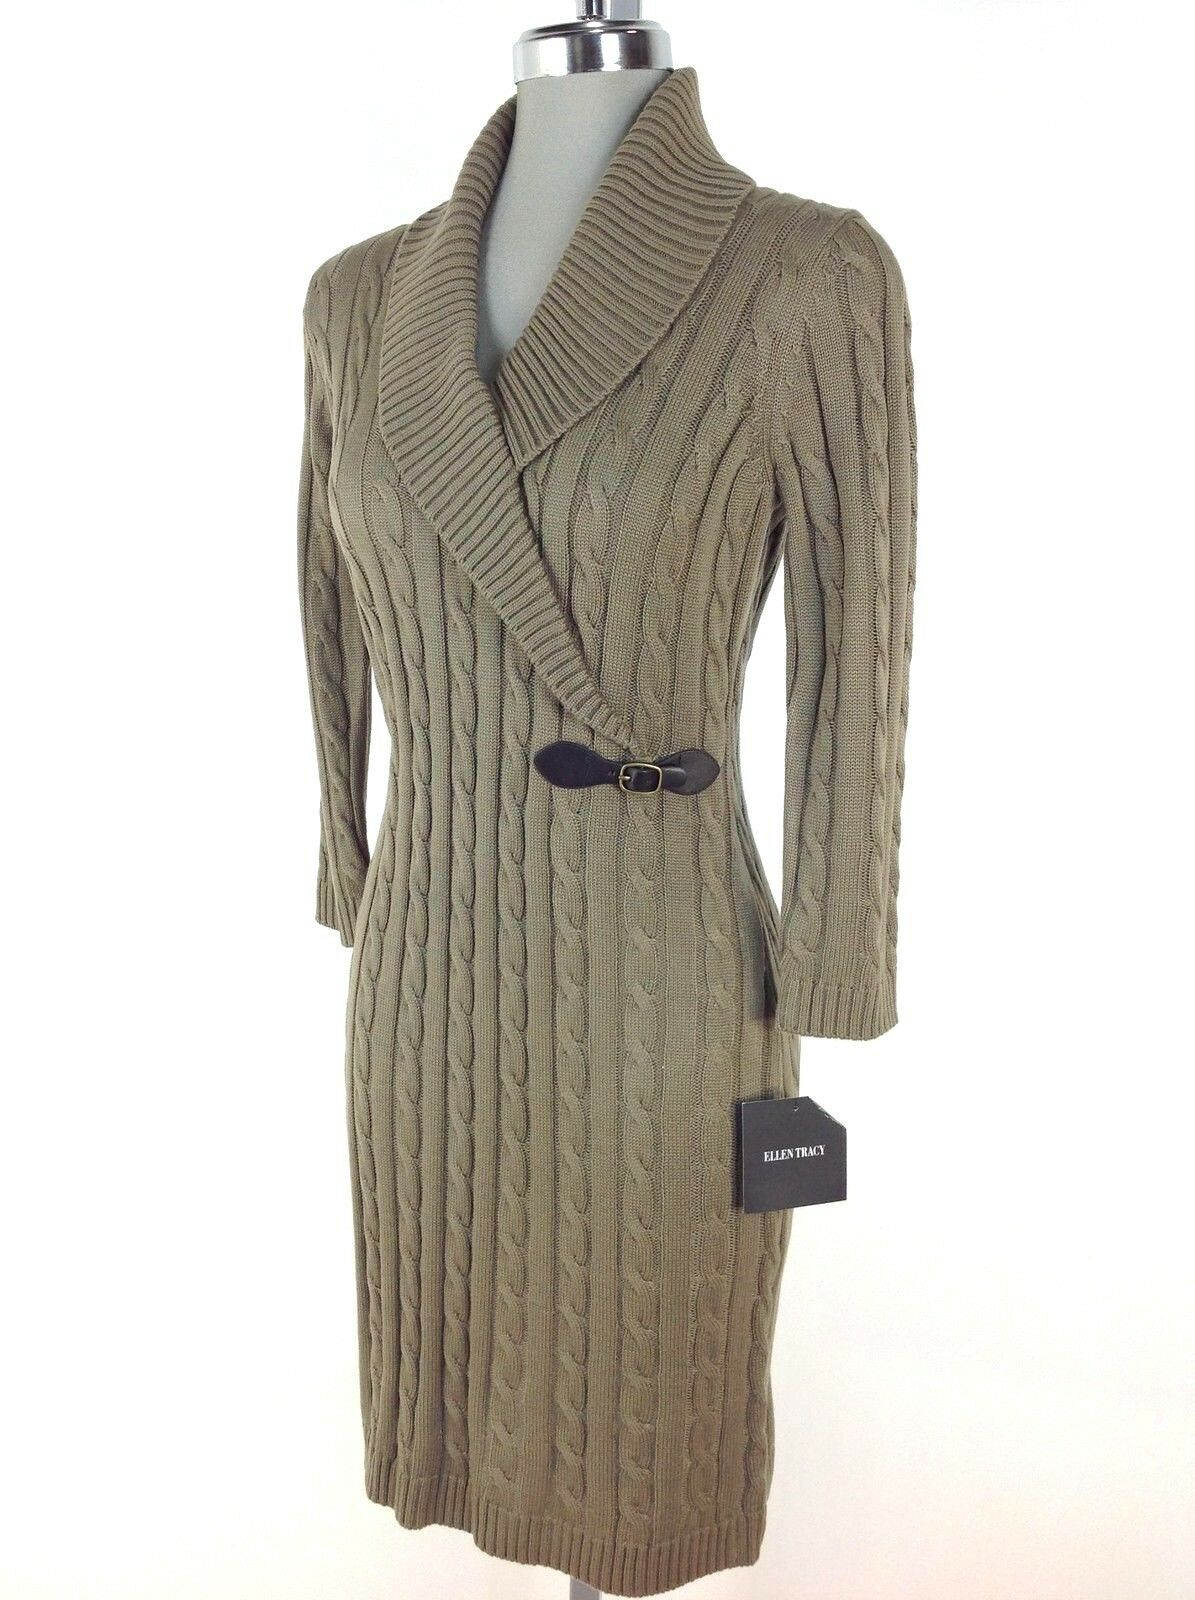 Ellen Tracy NEW Cable Sweater Dress TAUPE 3 4 Long Sleeve Shawl Collar size S